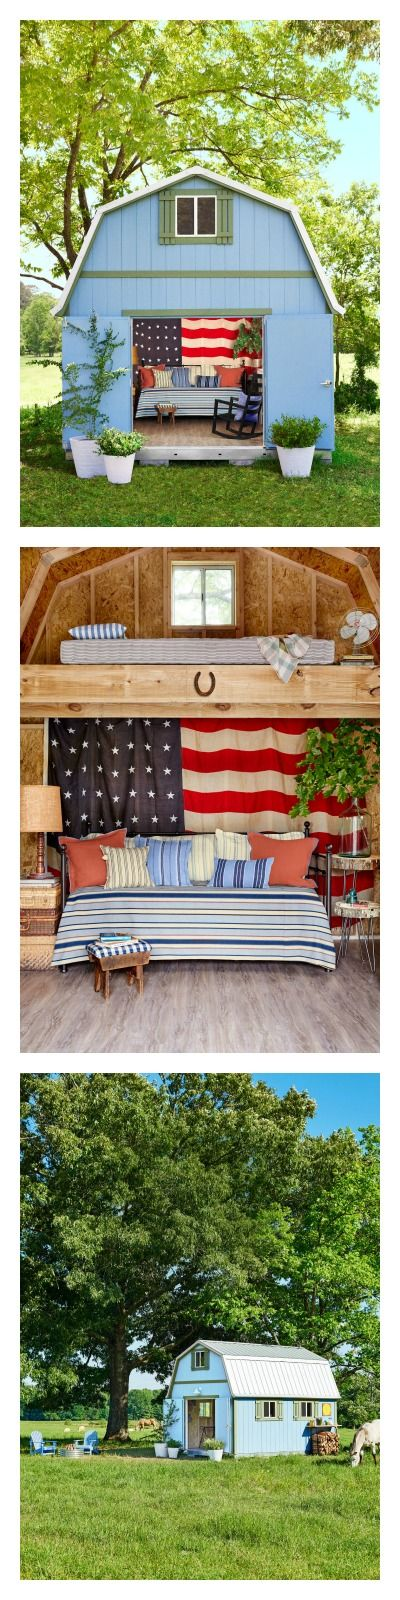 This charming she shed is everything we want in a backyard retreat. Its patriotic and rustic decor is the perfect relaxing atmosphere. You can decorate your own shed with these smart ideas!